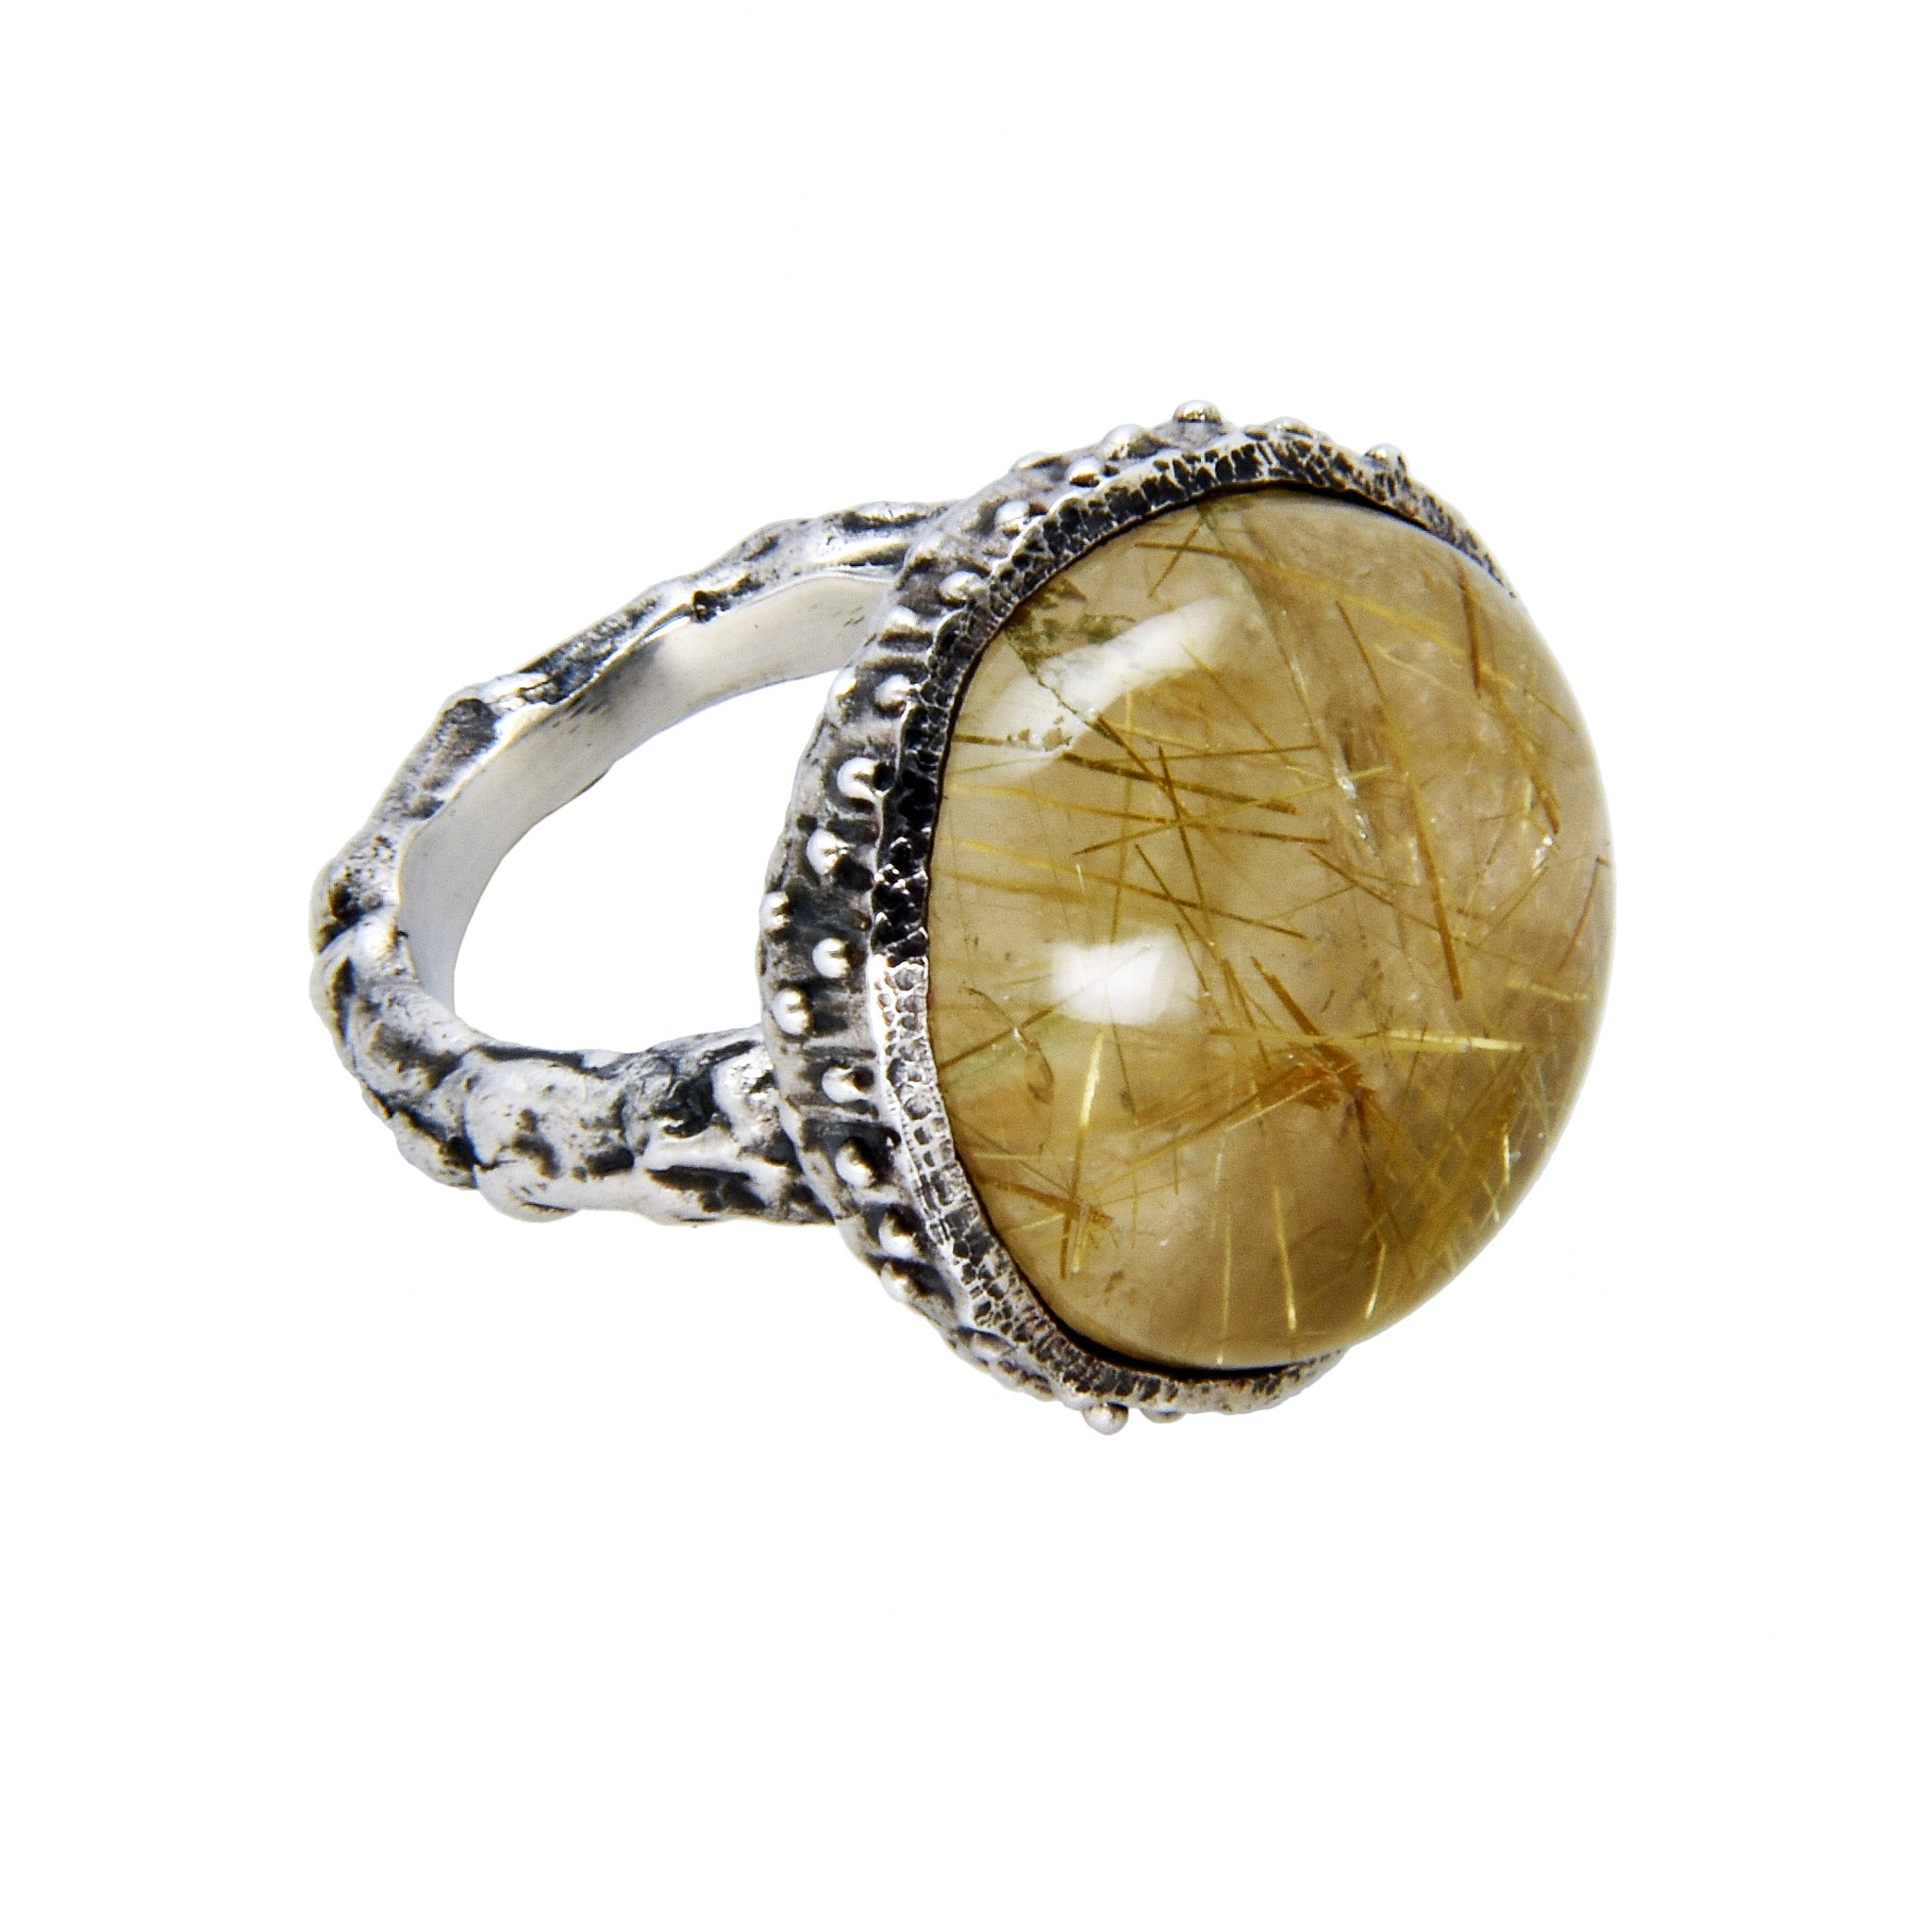 Acorn Ring with Rutilated Quartz - Oxidized Sterling Silver - US Size 6.5